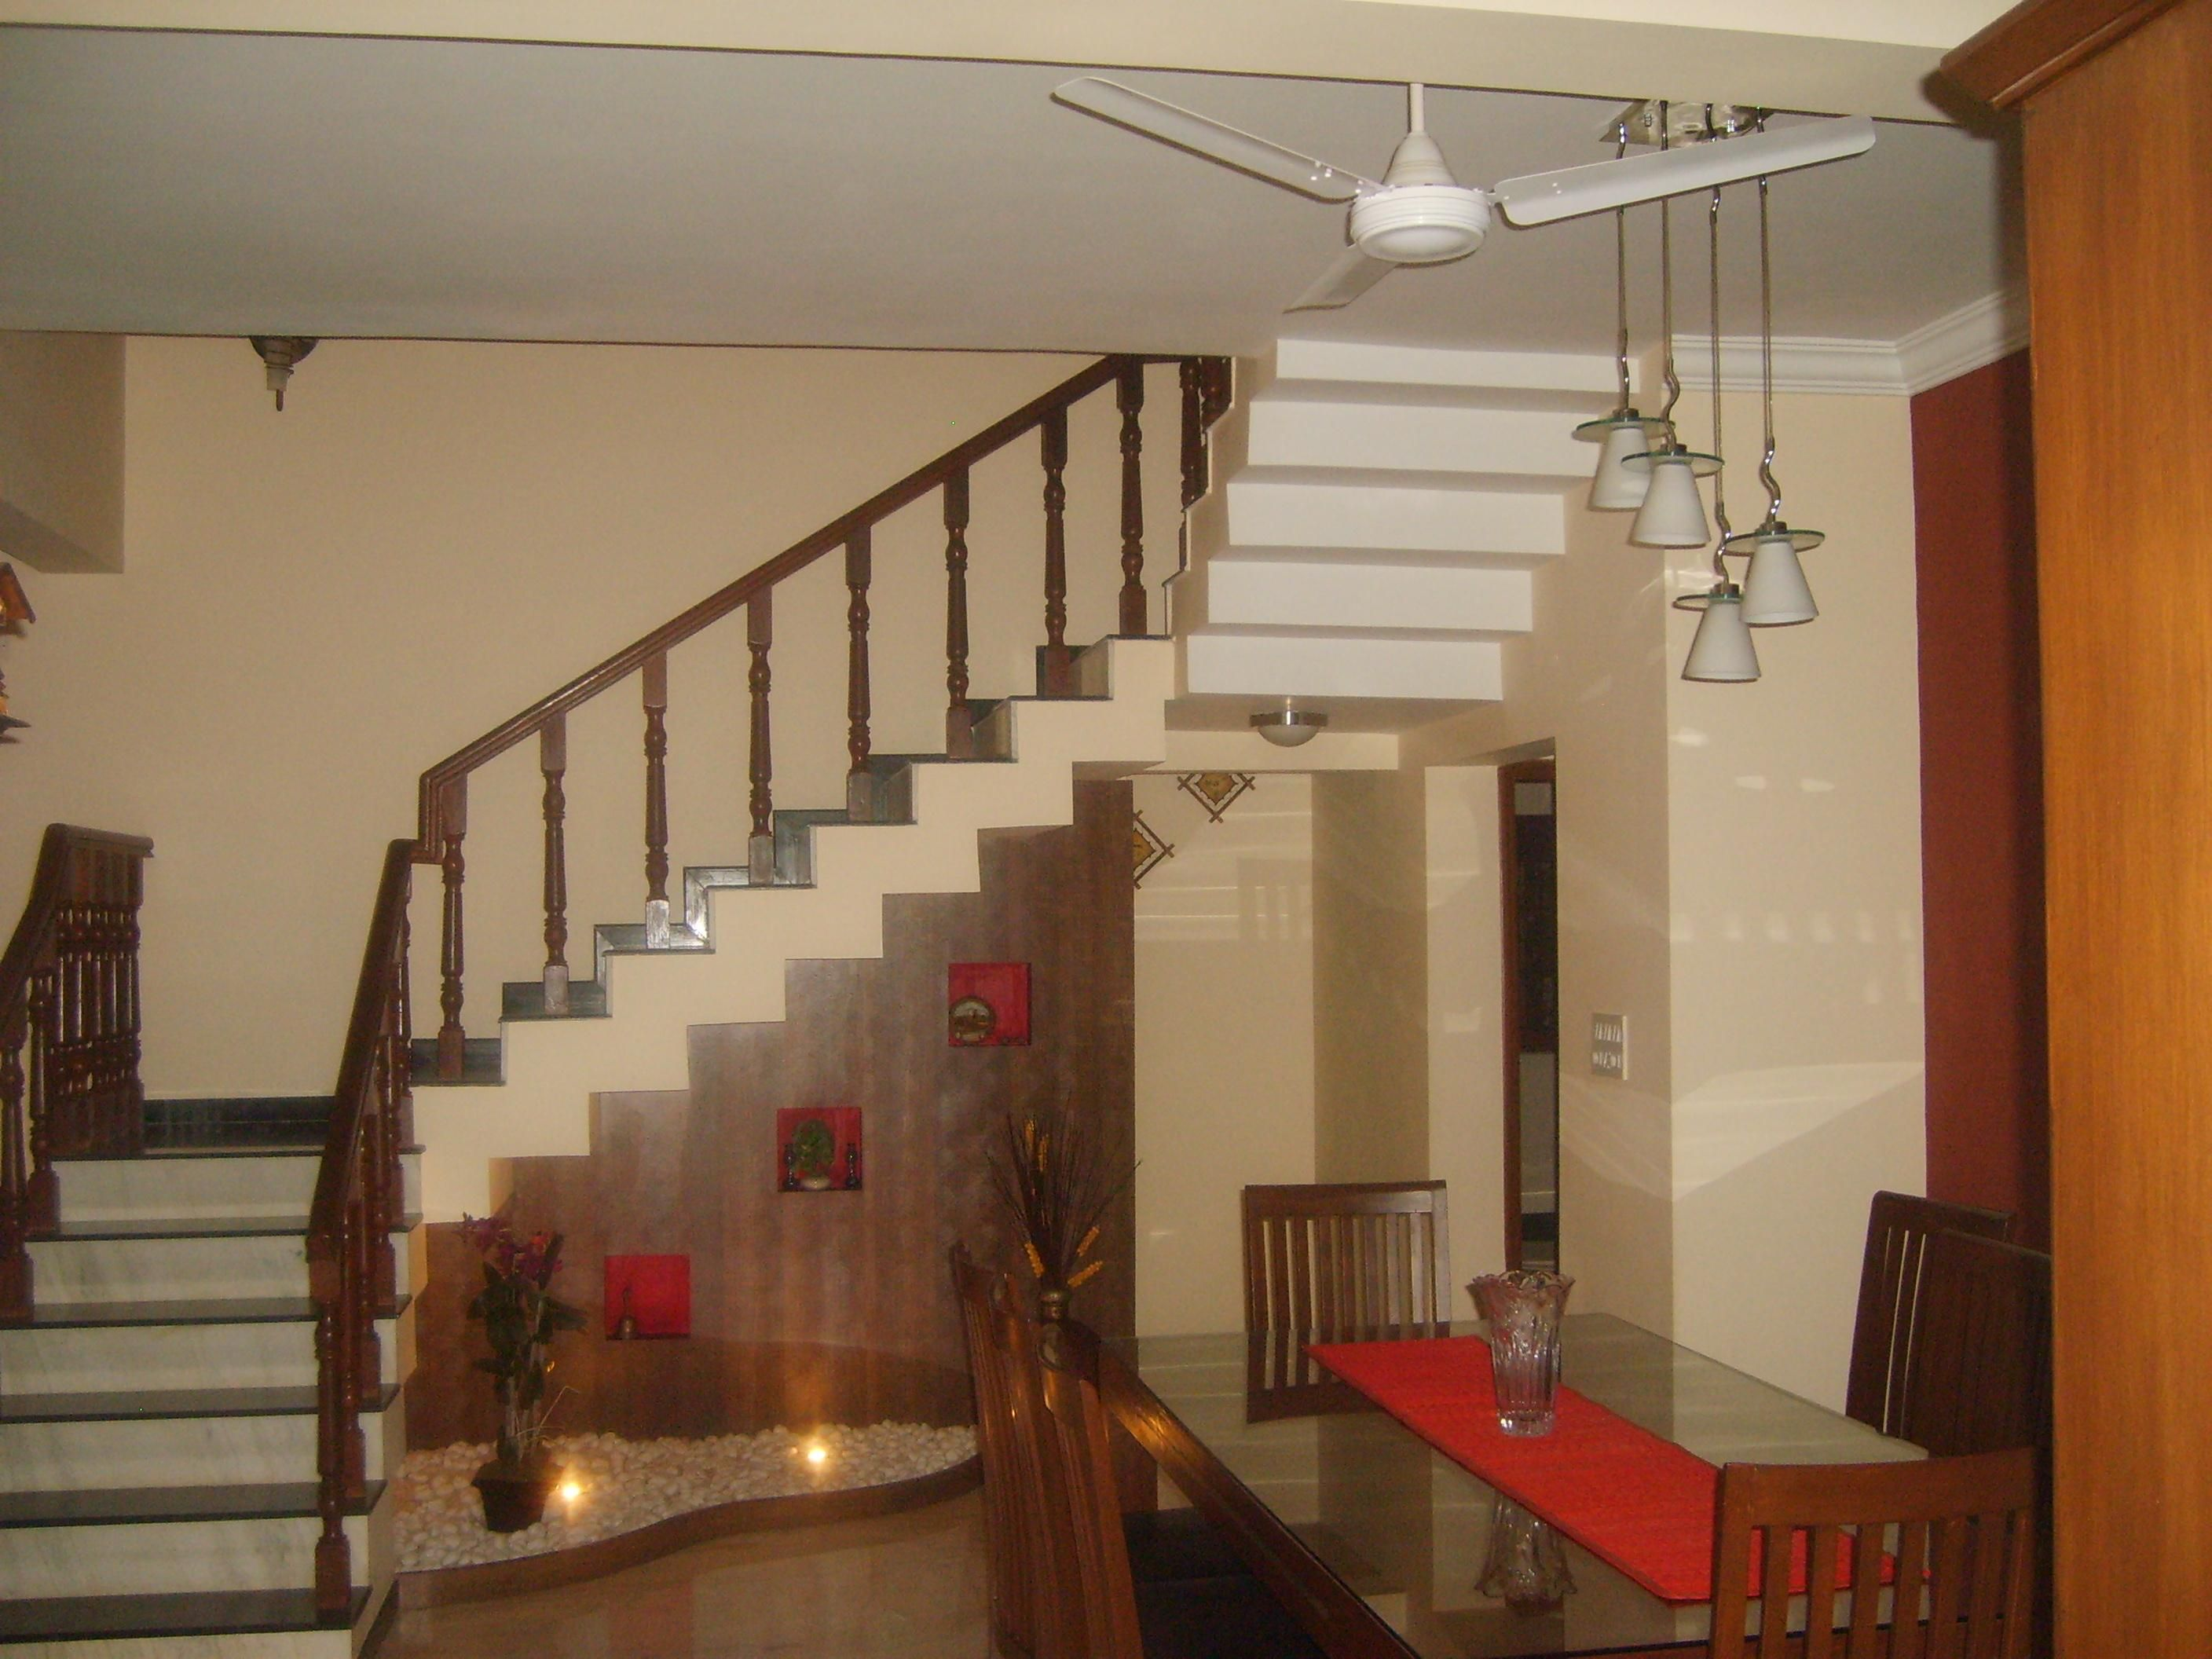 Unfinished Staircase Designs For Duplex House Staircase Design | Indian Duplex House Staircase Designs | House Plan | Stunning | Simple | 2Nd Floor Stair | Railing